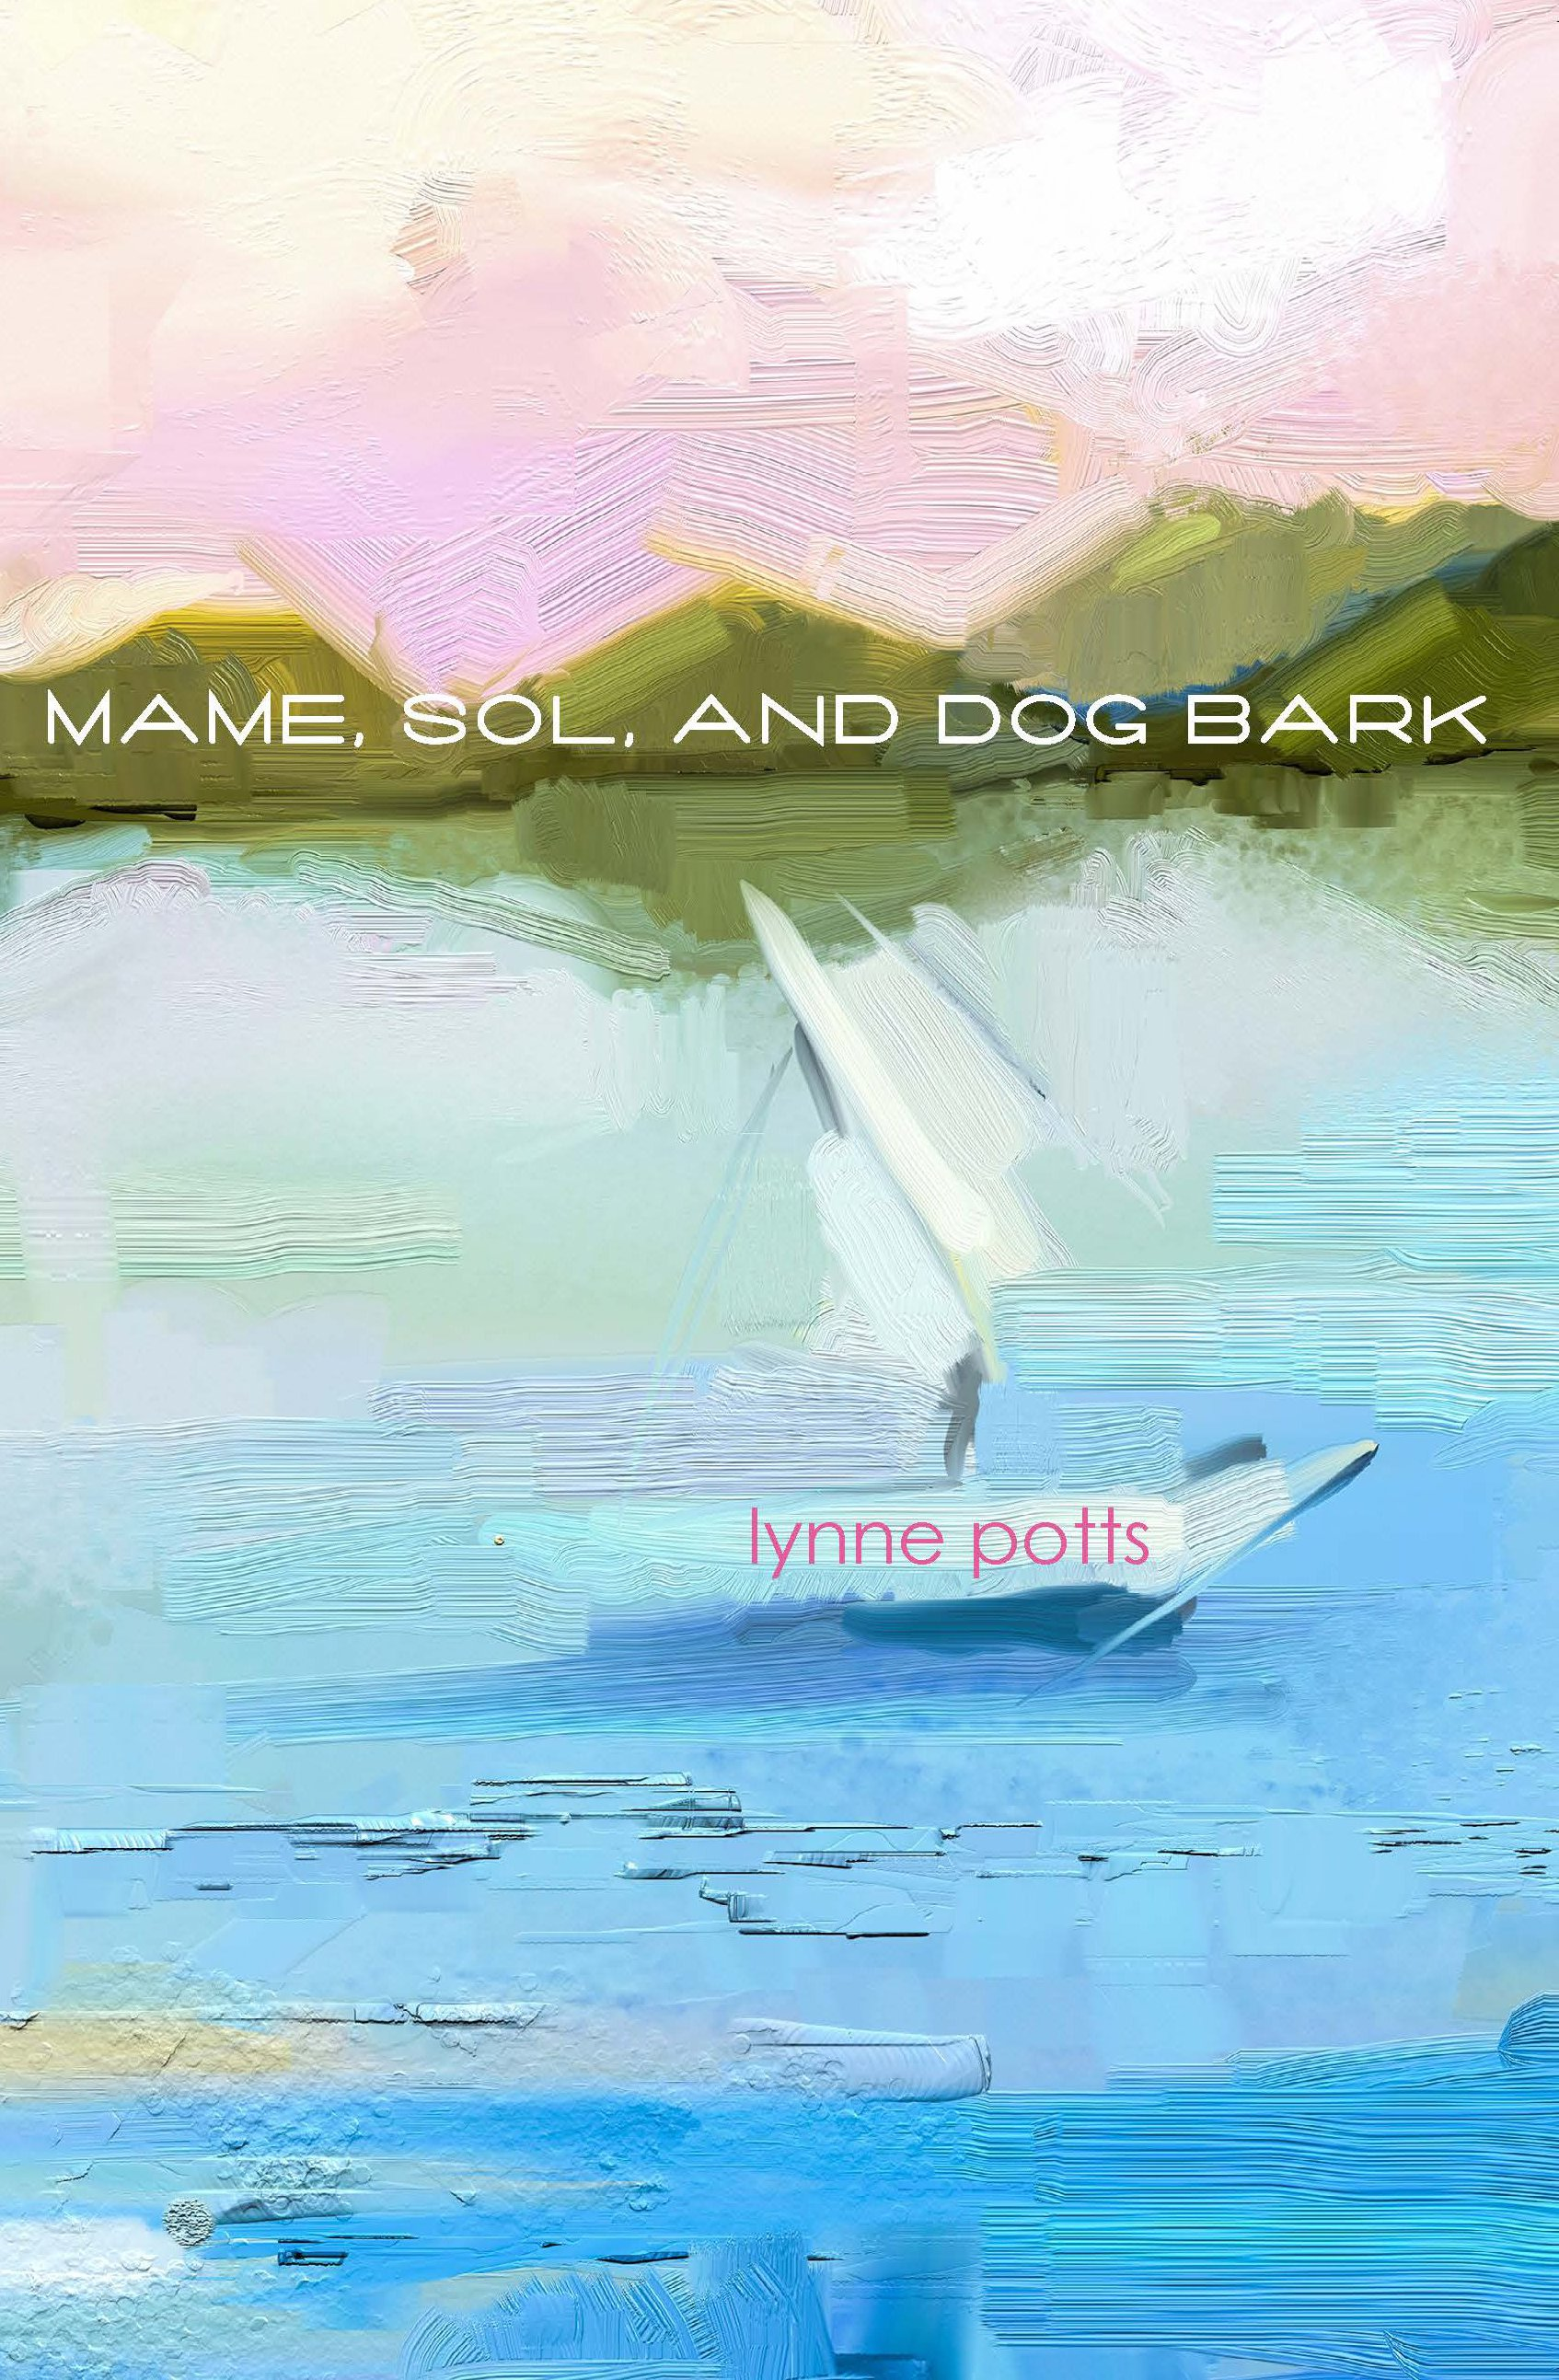 Mame, Sol, and Dog Bark-- Lynne Potts